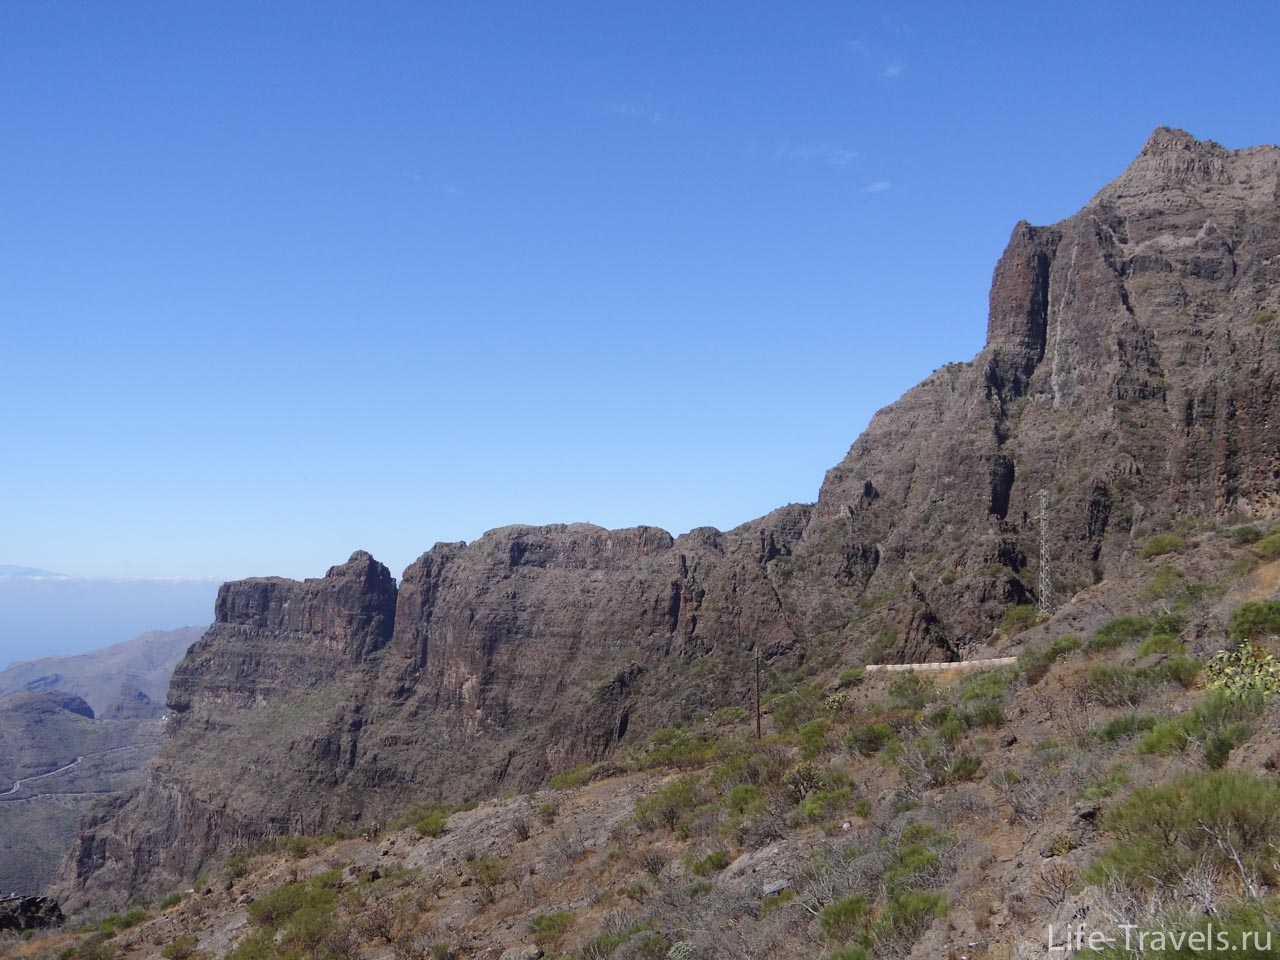 Masca rocks in the gorge